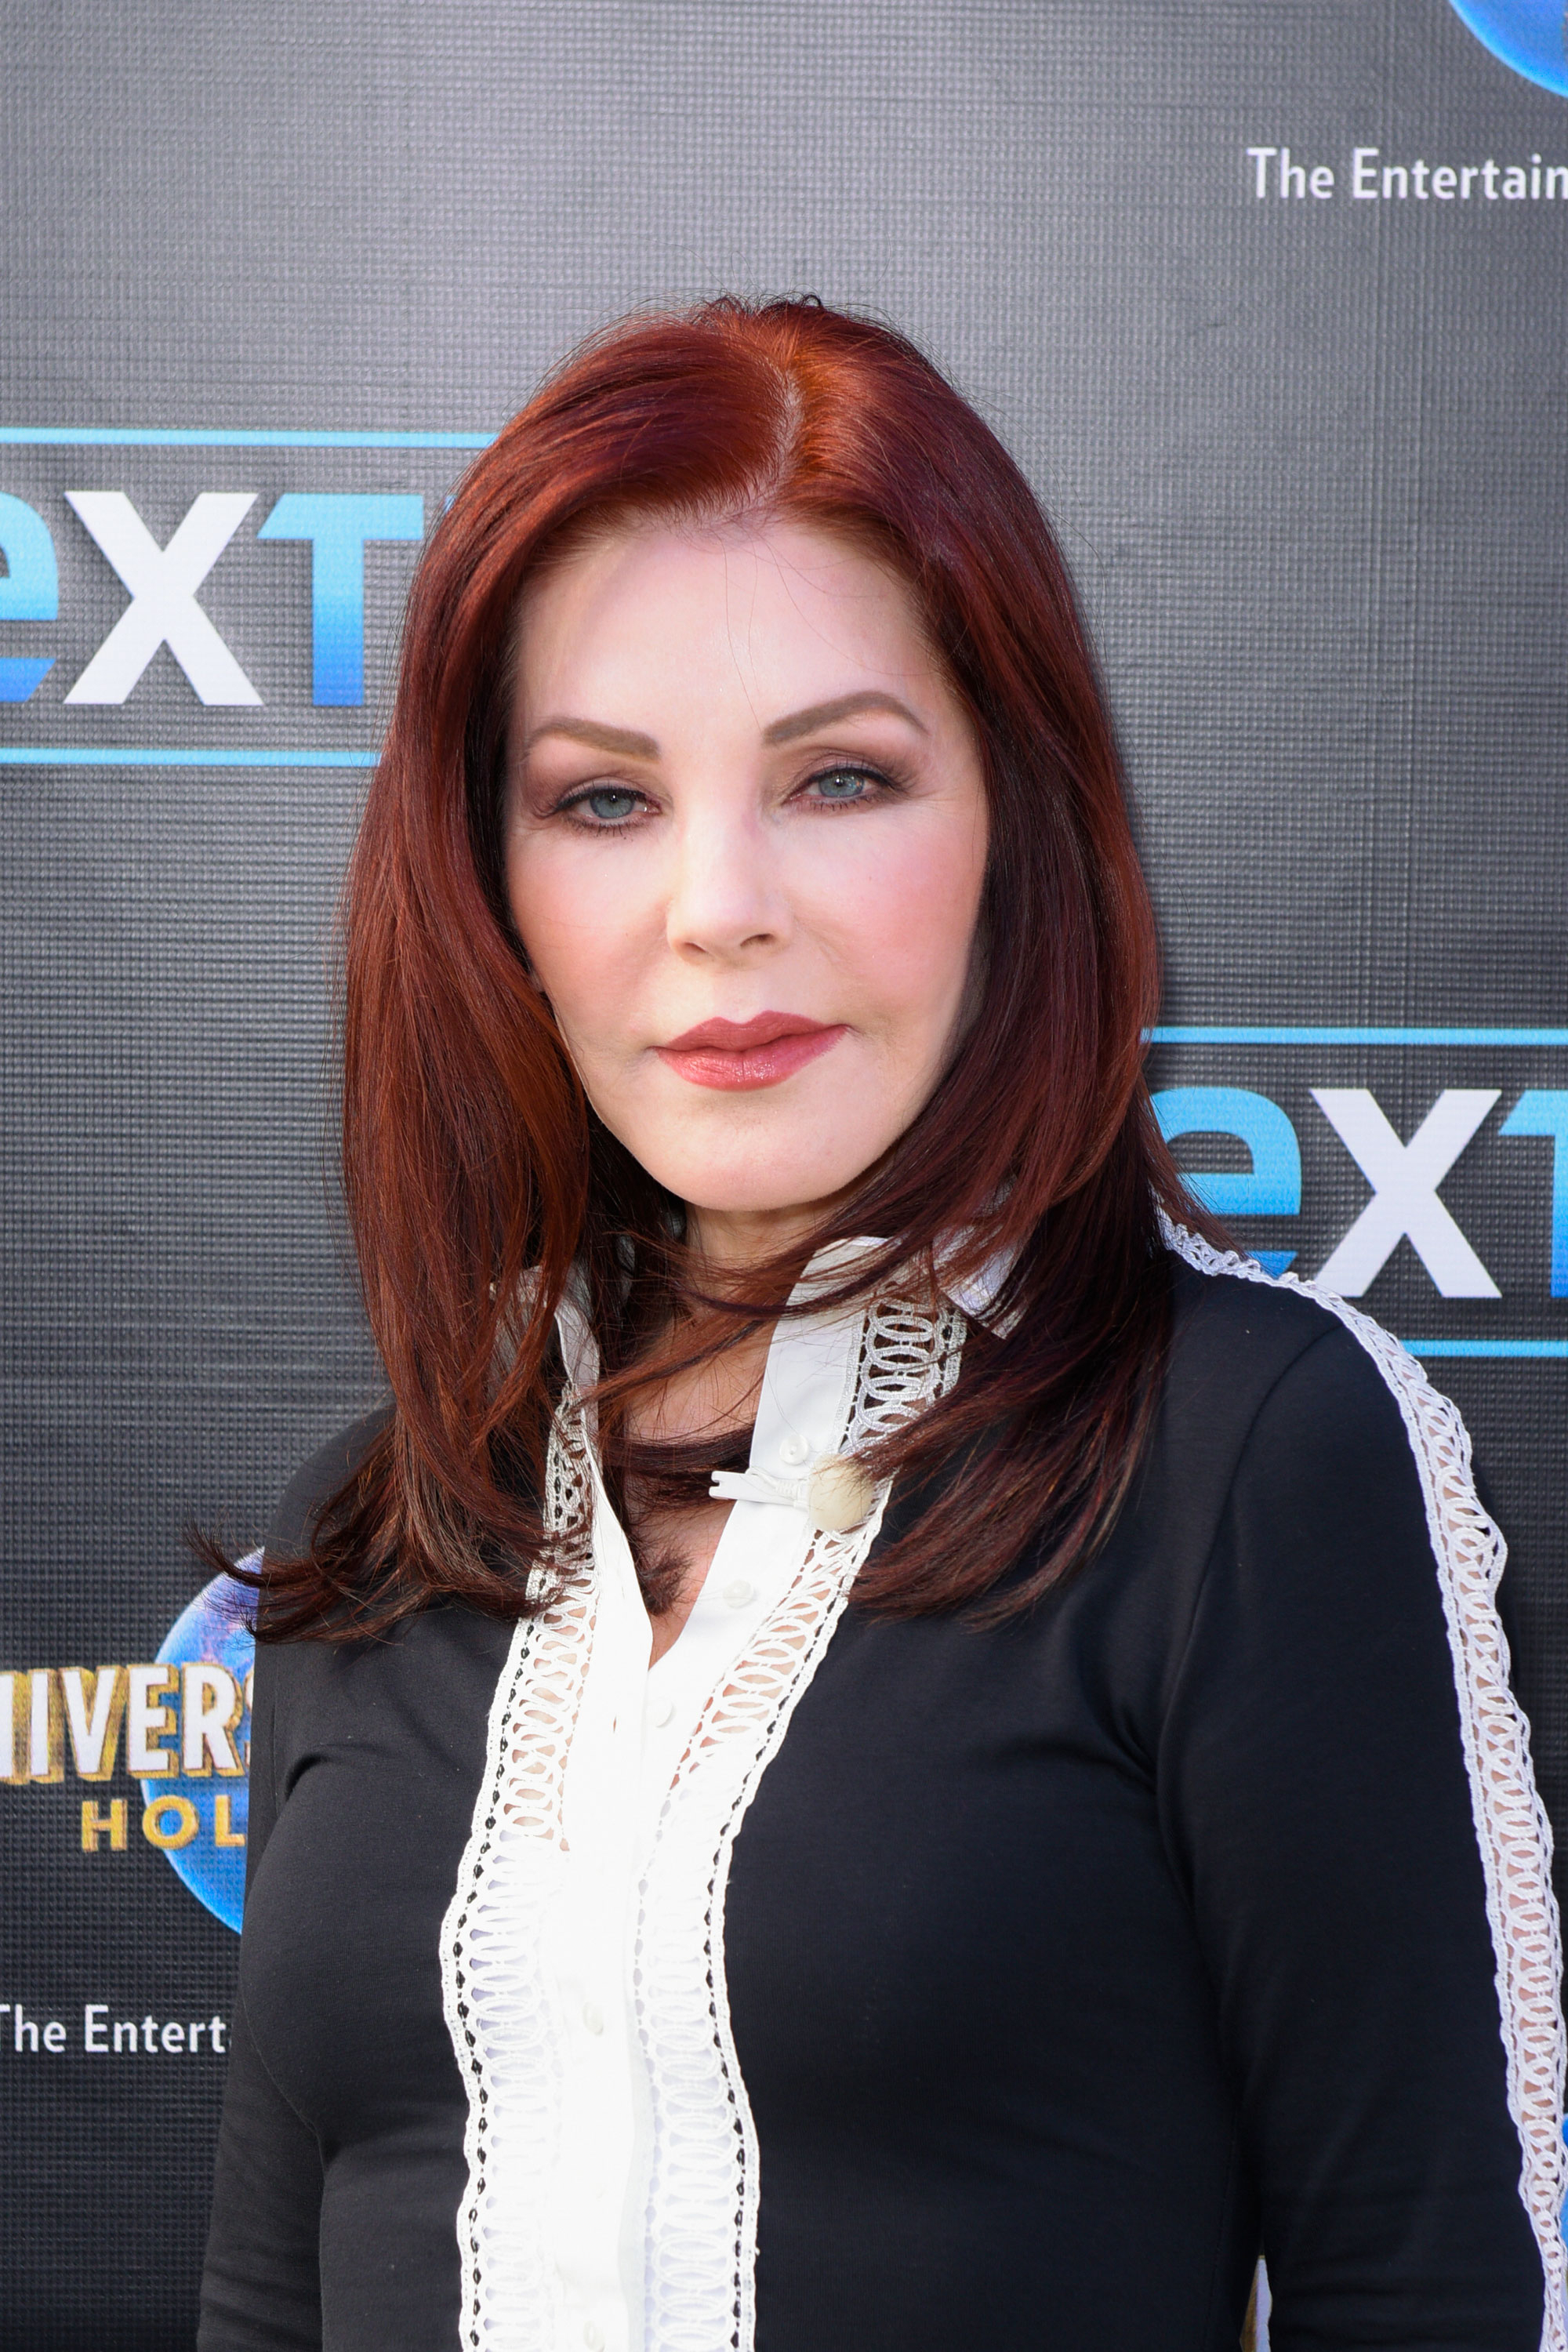 Priscilla Presley is caring for her twin granddaughters in the wake of her daughter Lisa Marie Presley's custody battle